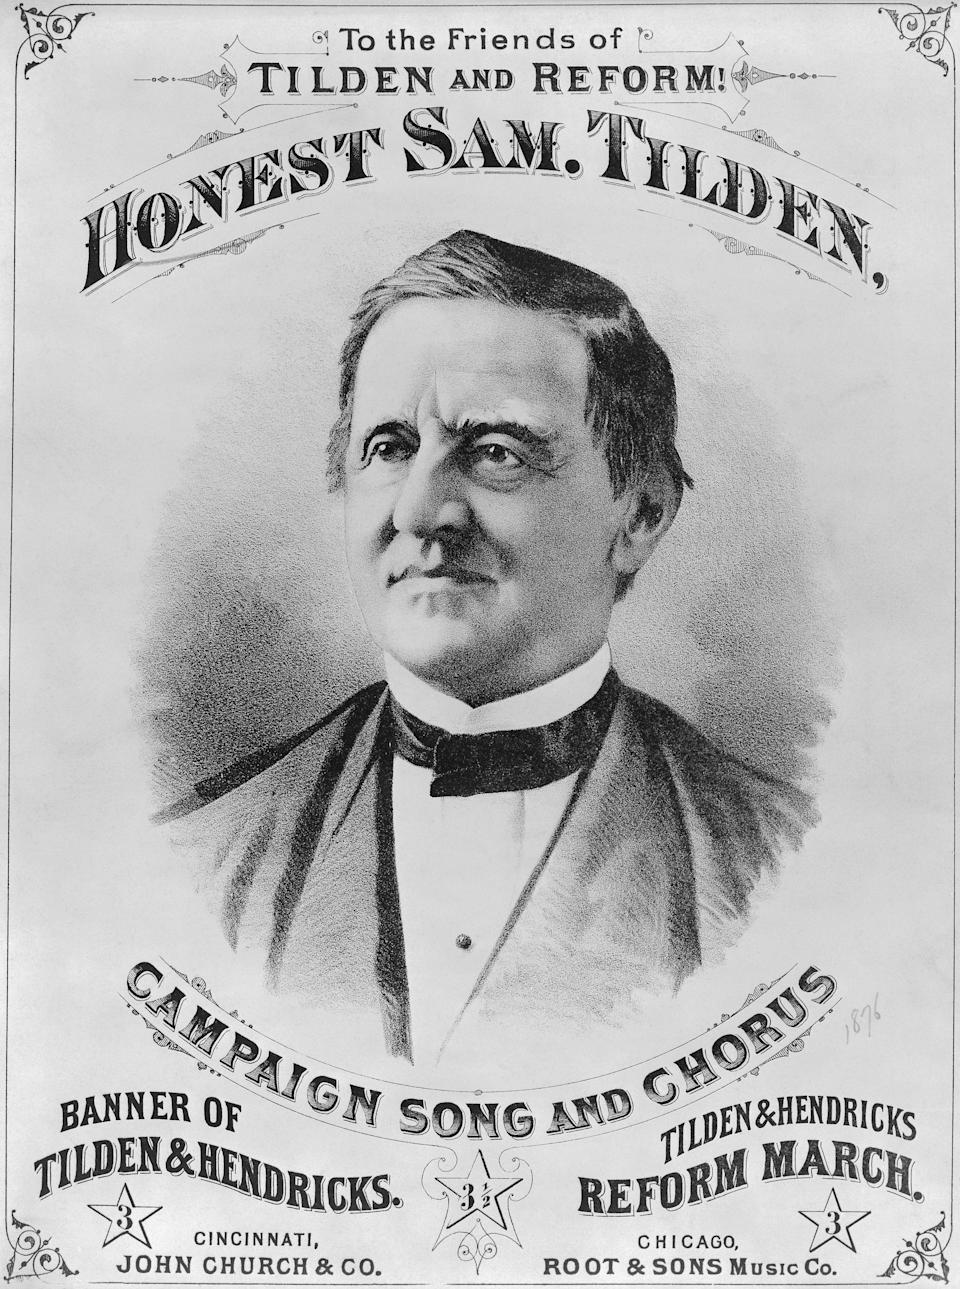 Samuel Tilden was the Democratic candidate who, although received more popular votes than his Republican opponent, lost the Presidential election by one electoral vote to Rutherford B. Hayes. This banner was supporting him and his ideas of reform.